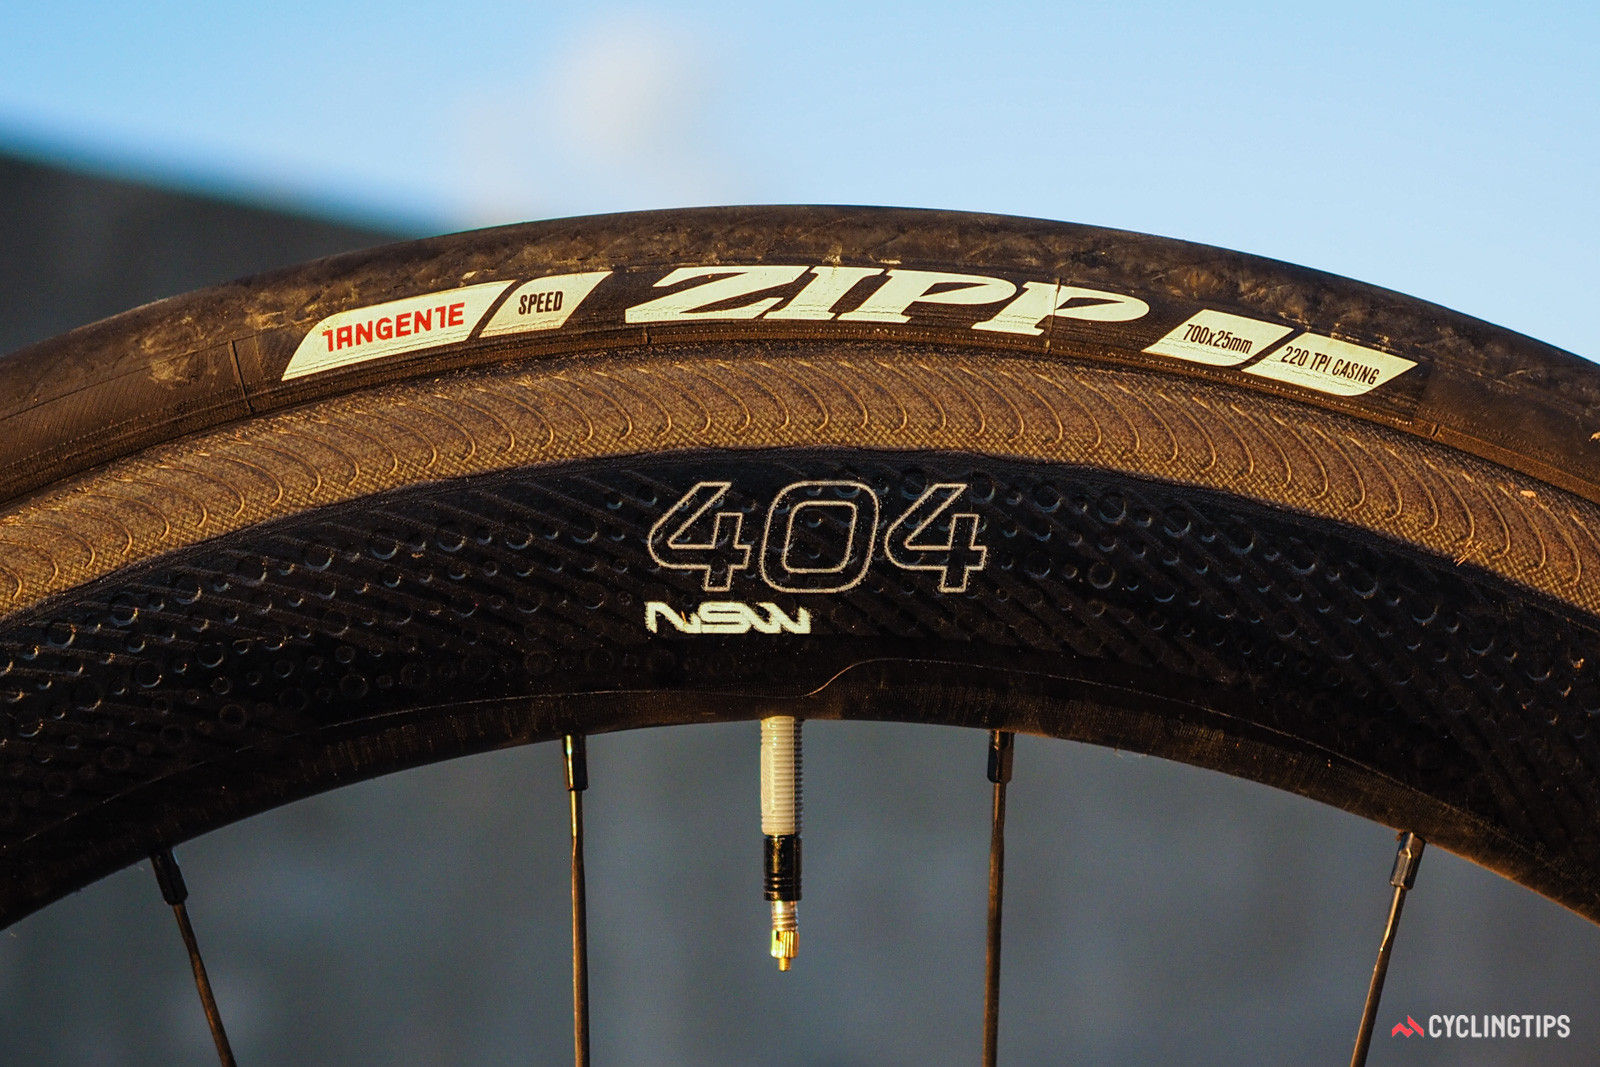 """The """"Showstopper"""" sidewalls feature a roughened surface, embedded silicon carbide ceramic particles, and molded-in grooves that are designed to boost both dry- and wet-conditions braking performance."""